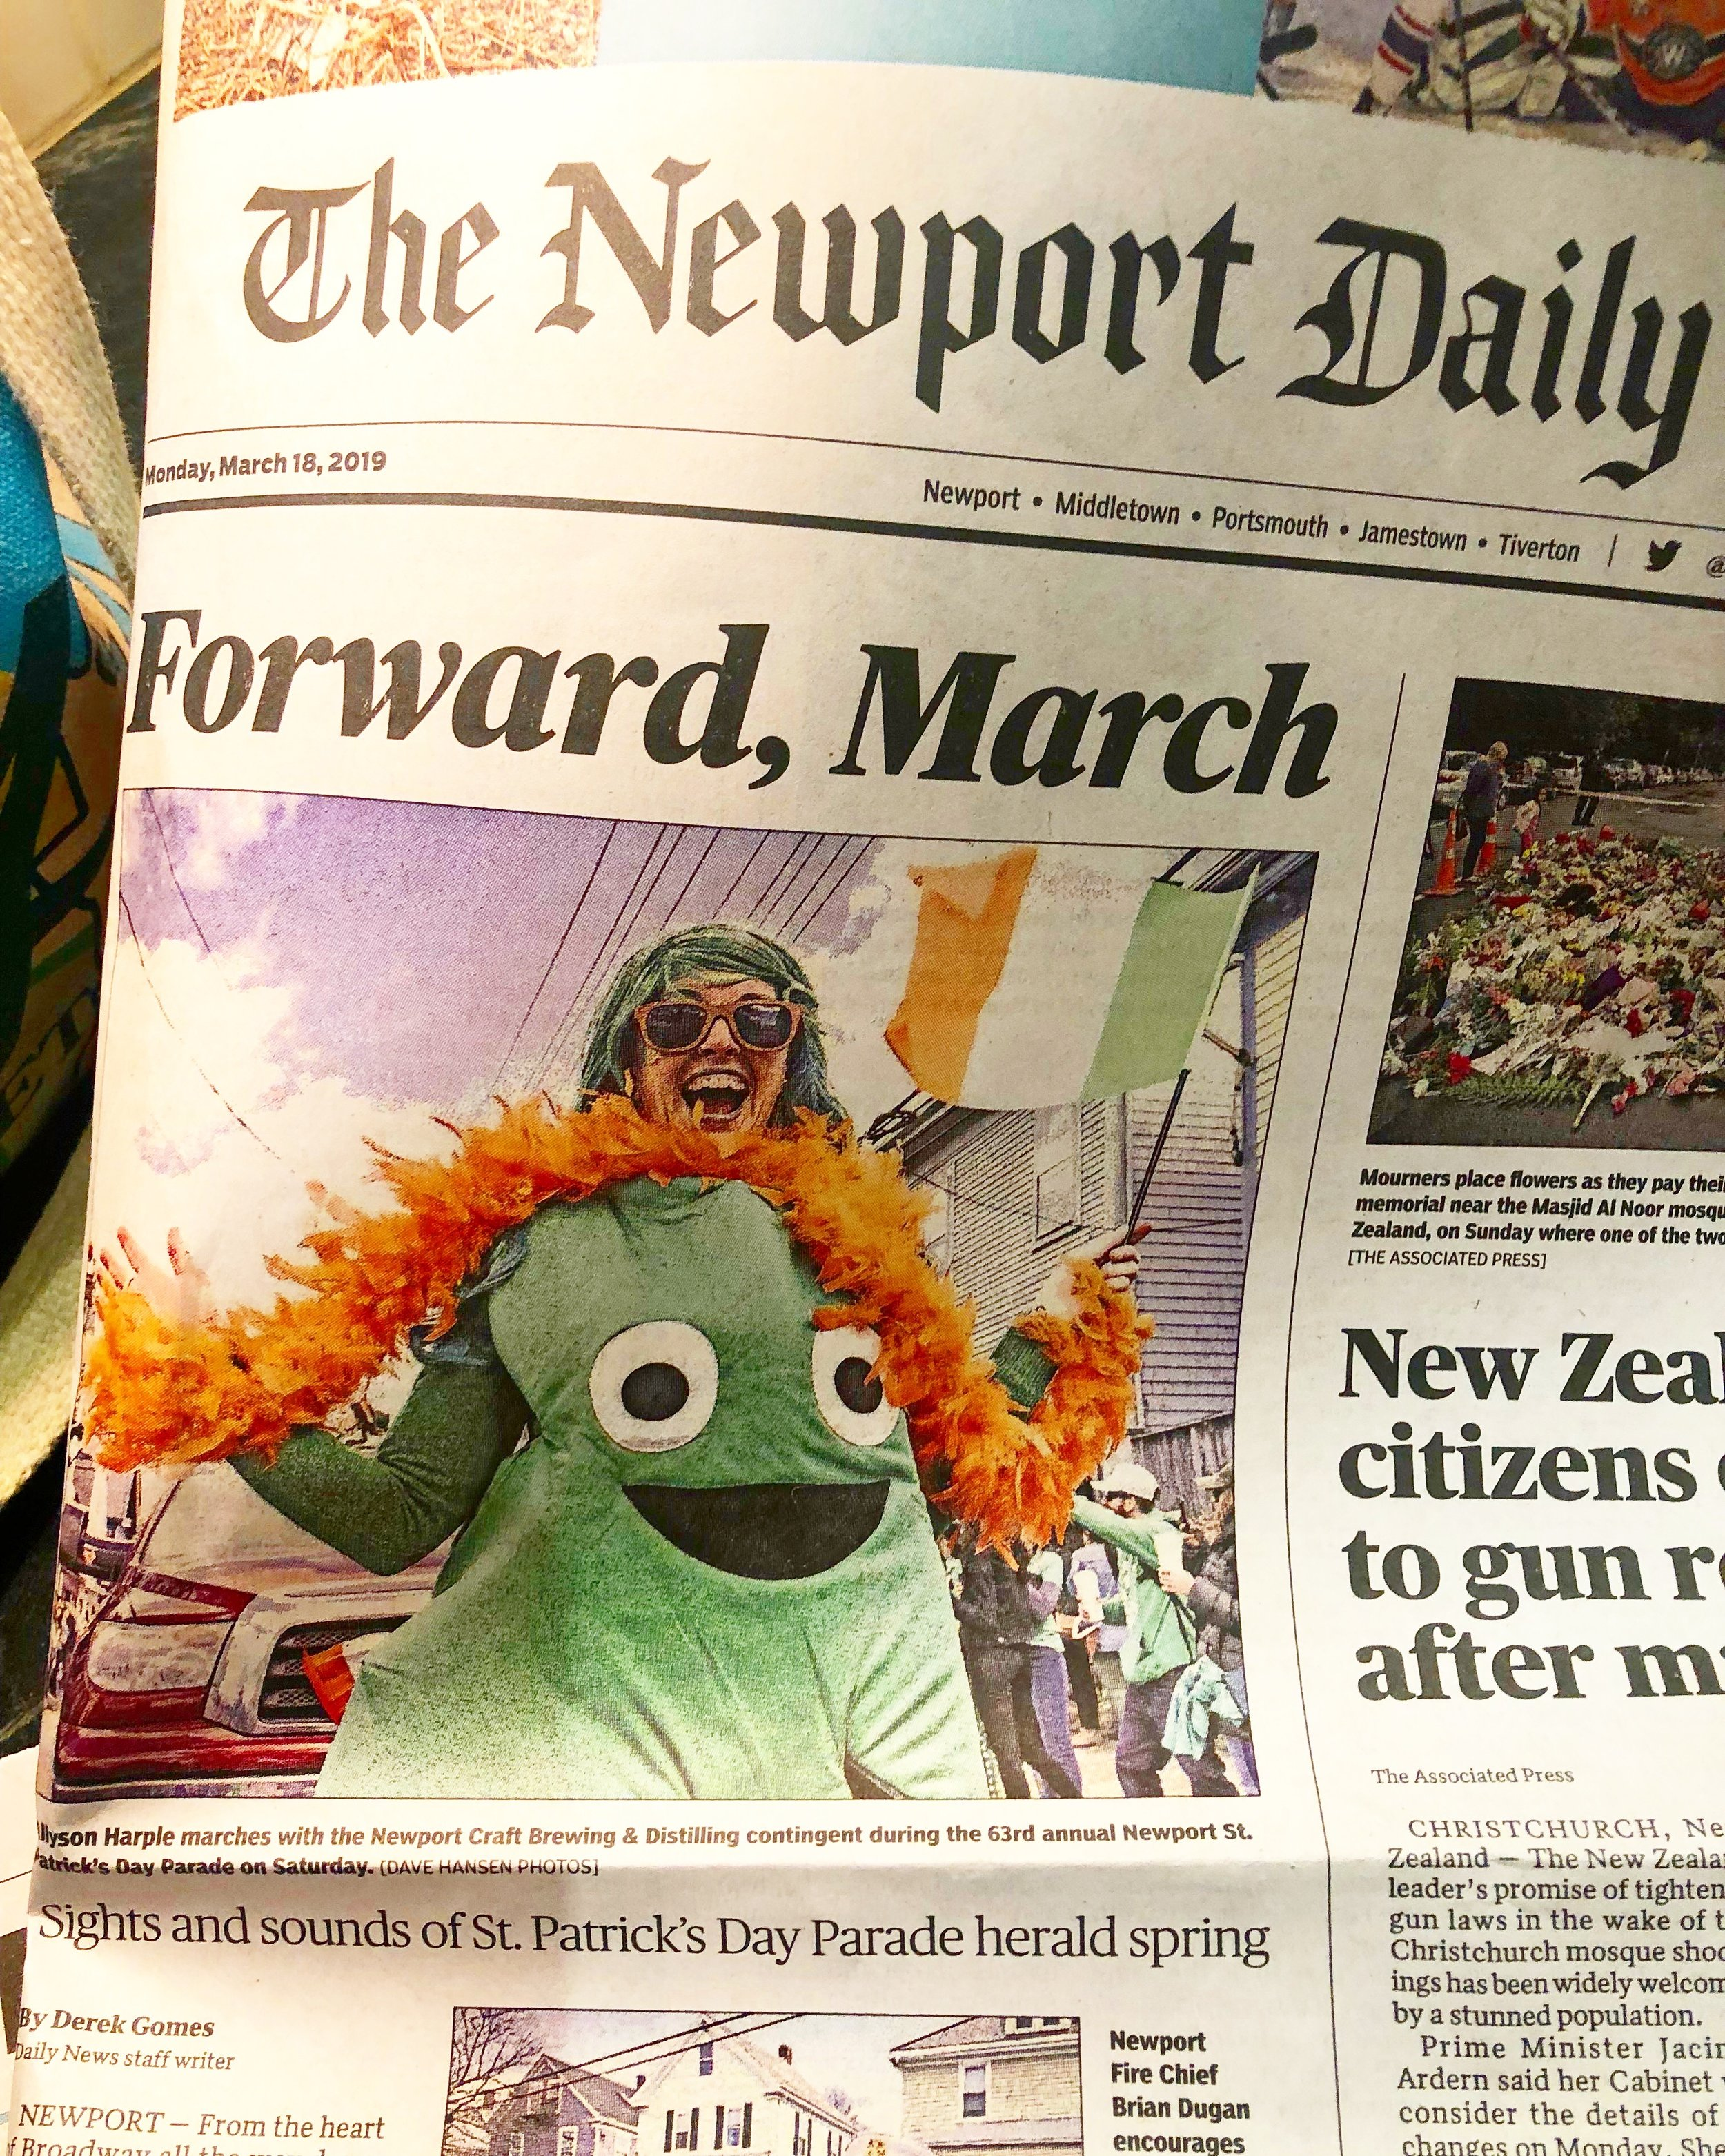 Front Page News - St. Patrick's Day Parade